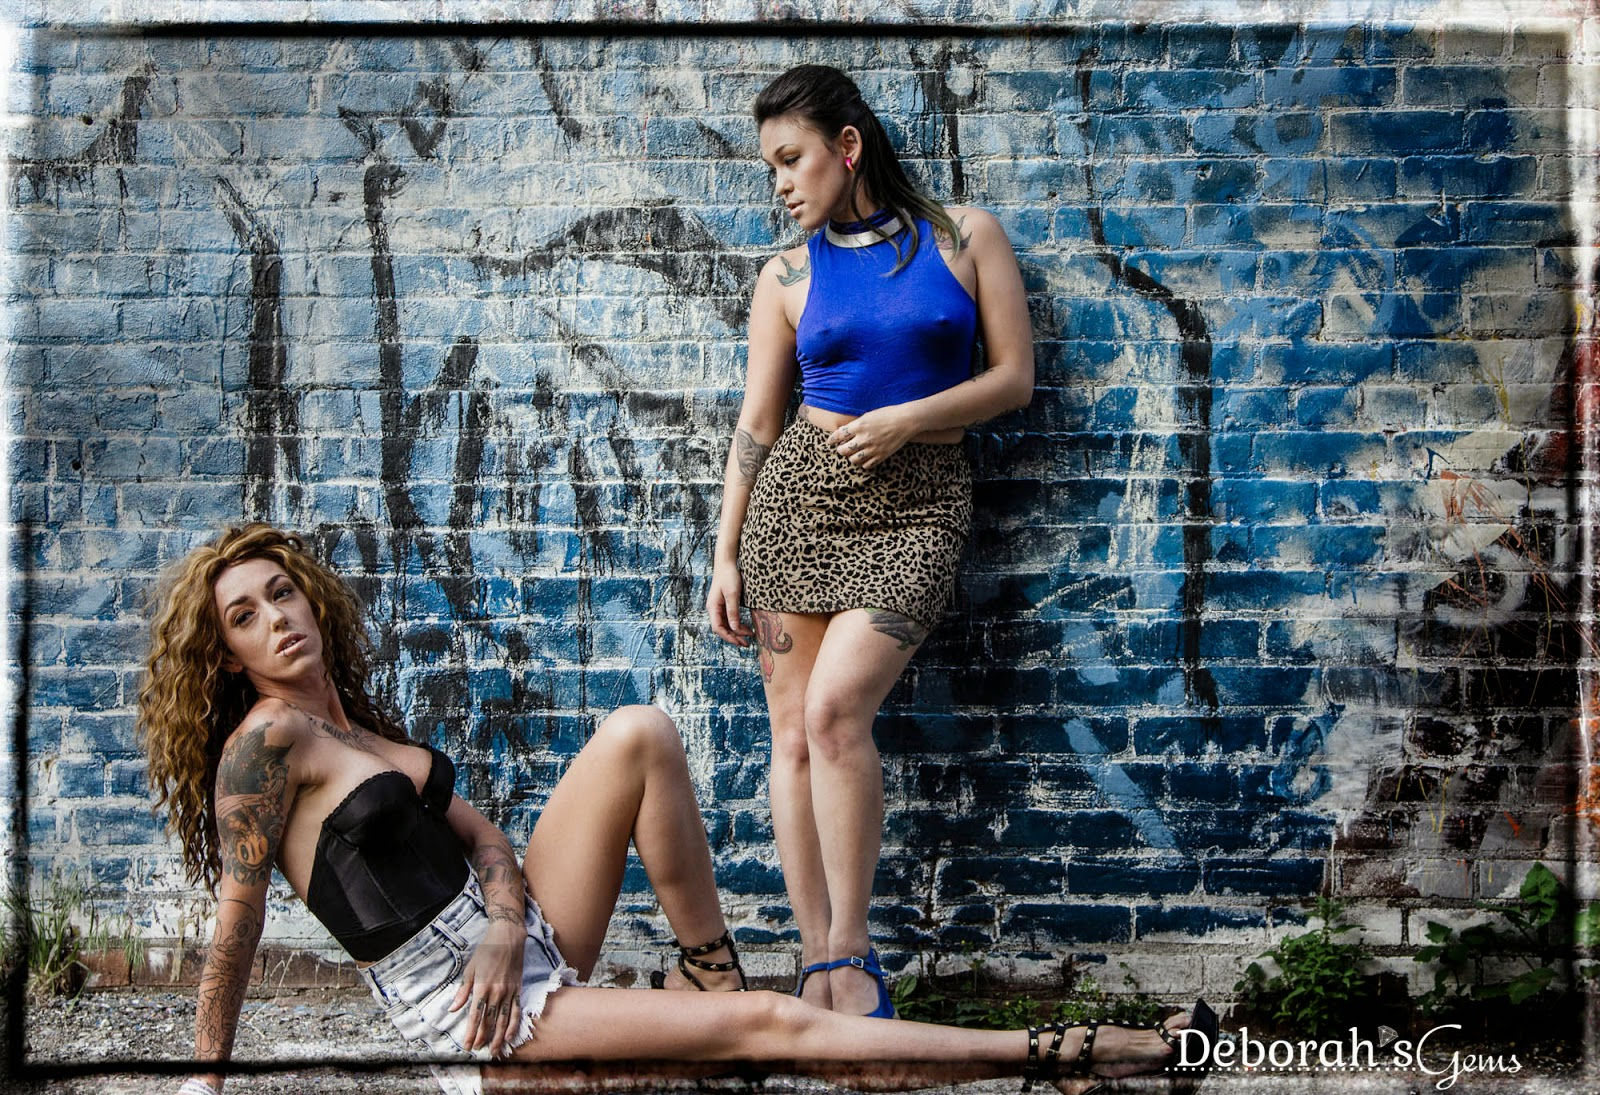 Jasmine & Onikaa - photo by Deborah Frings - Deborah's Gems